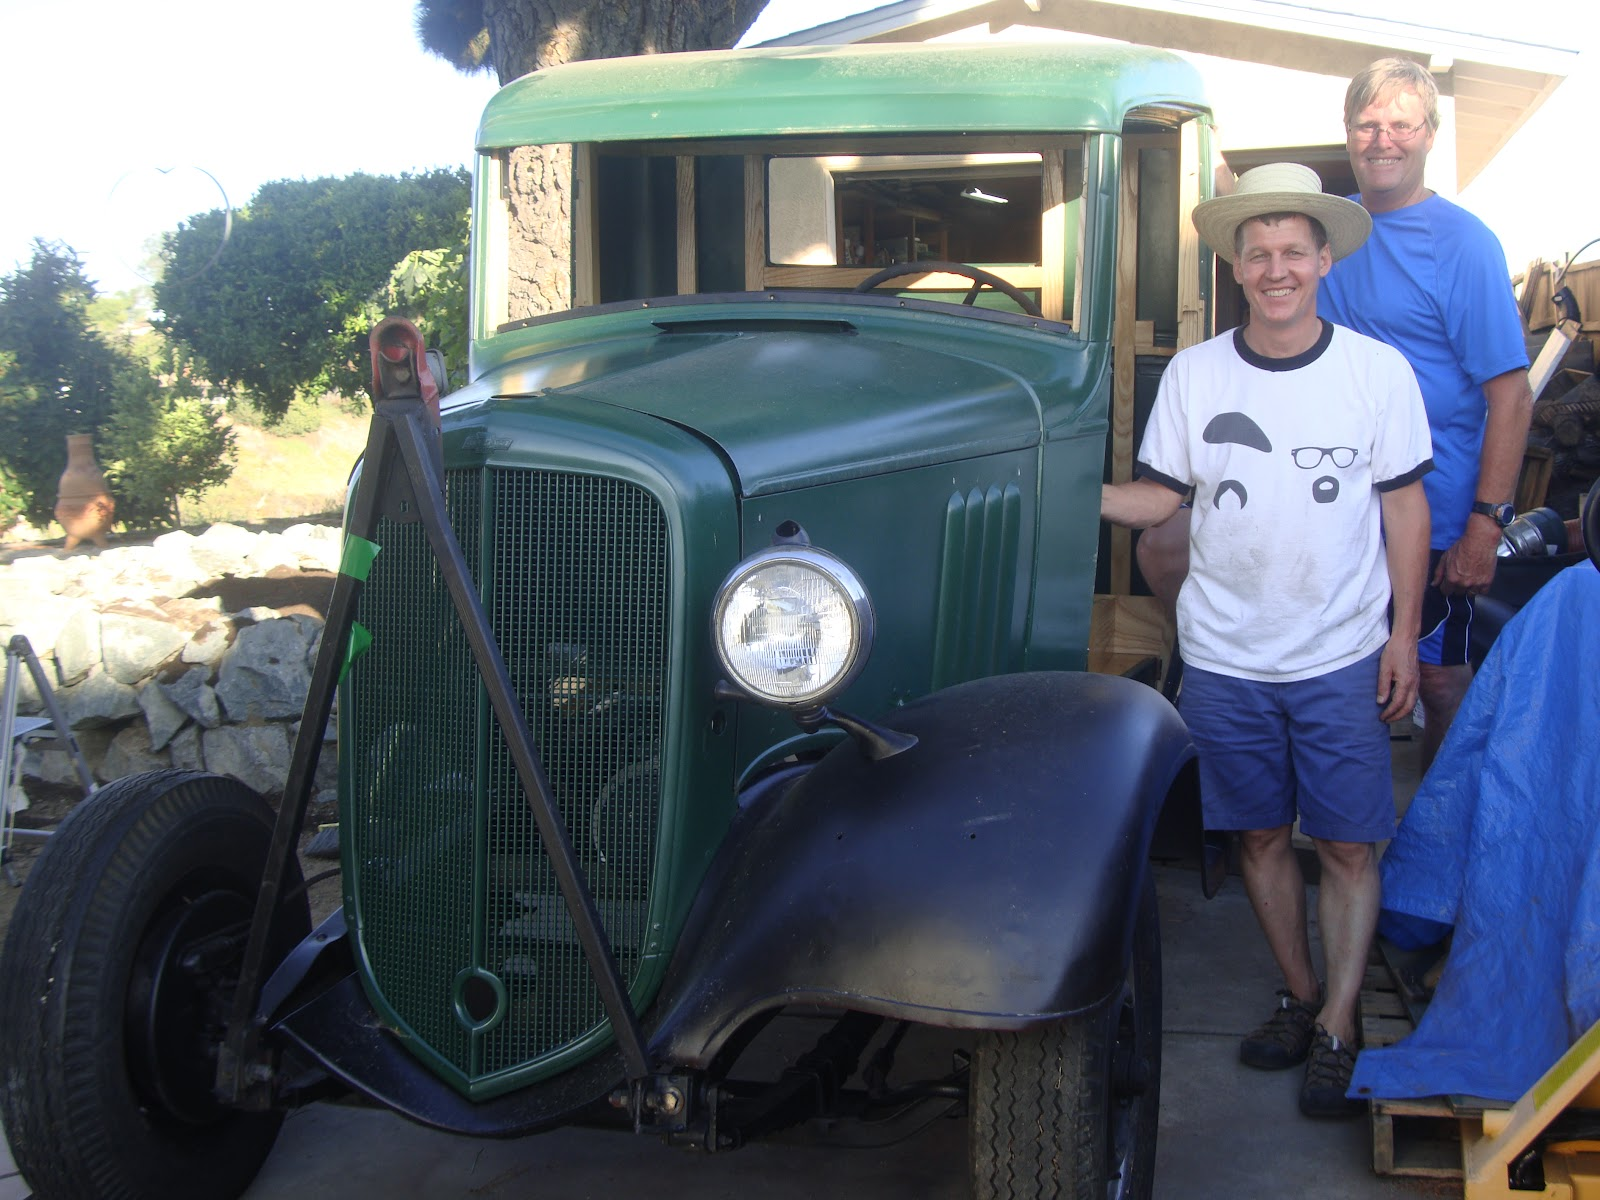 My 1935 Chevy Pickup Restoration and EV Conversion Project